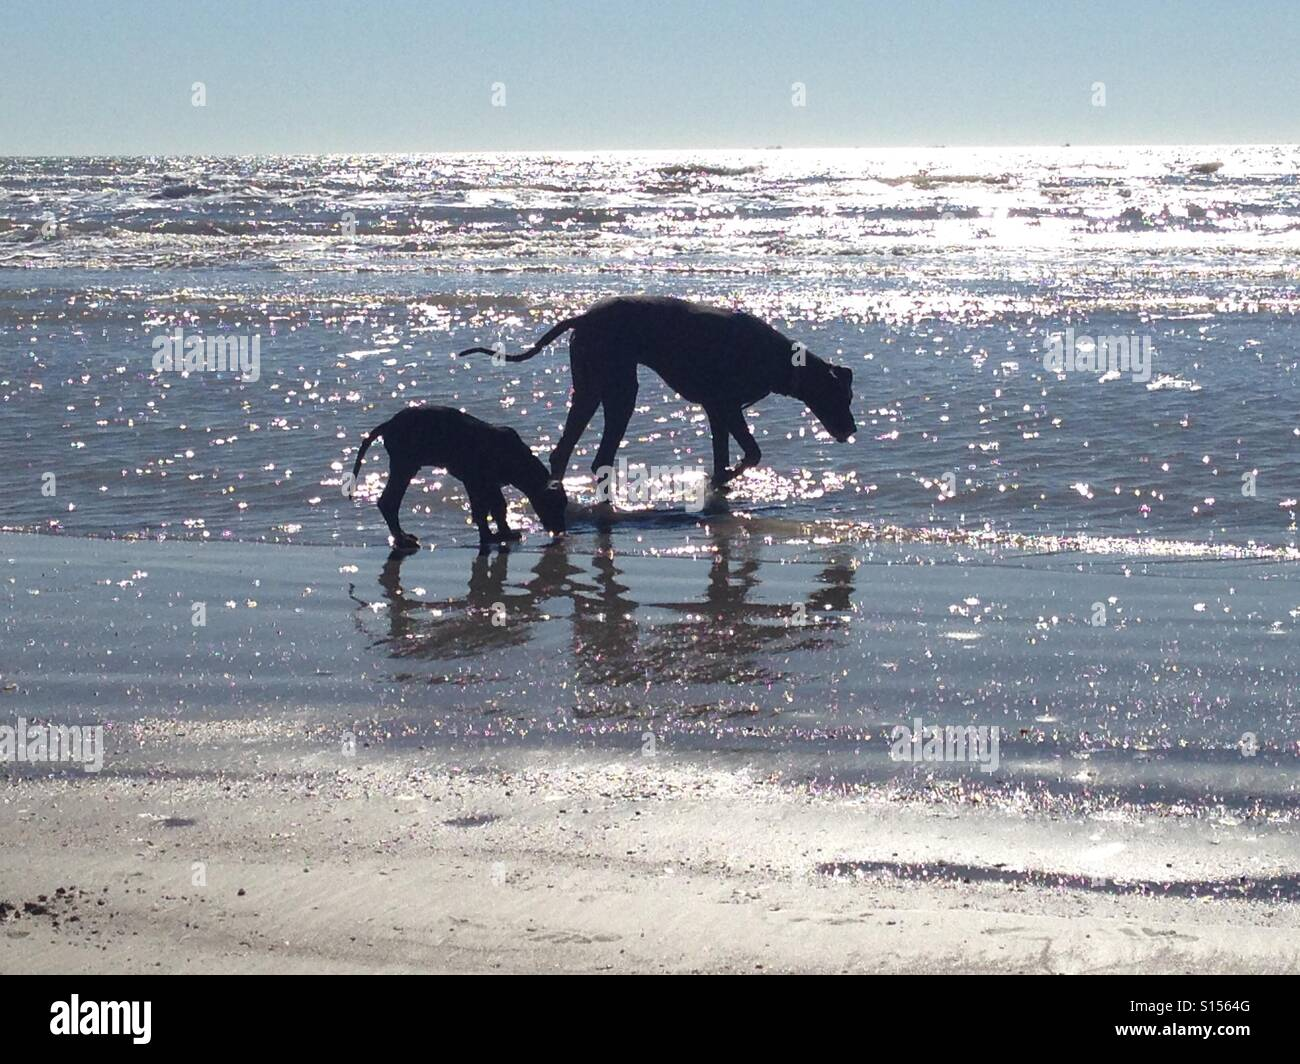 Danes at the Beach - Stock Image